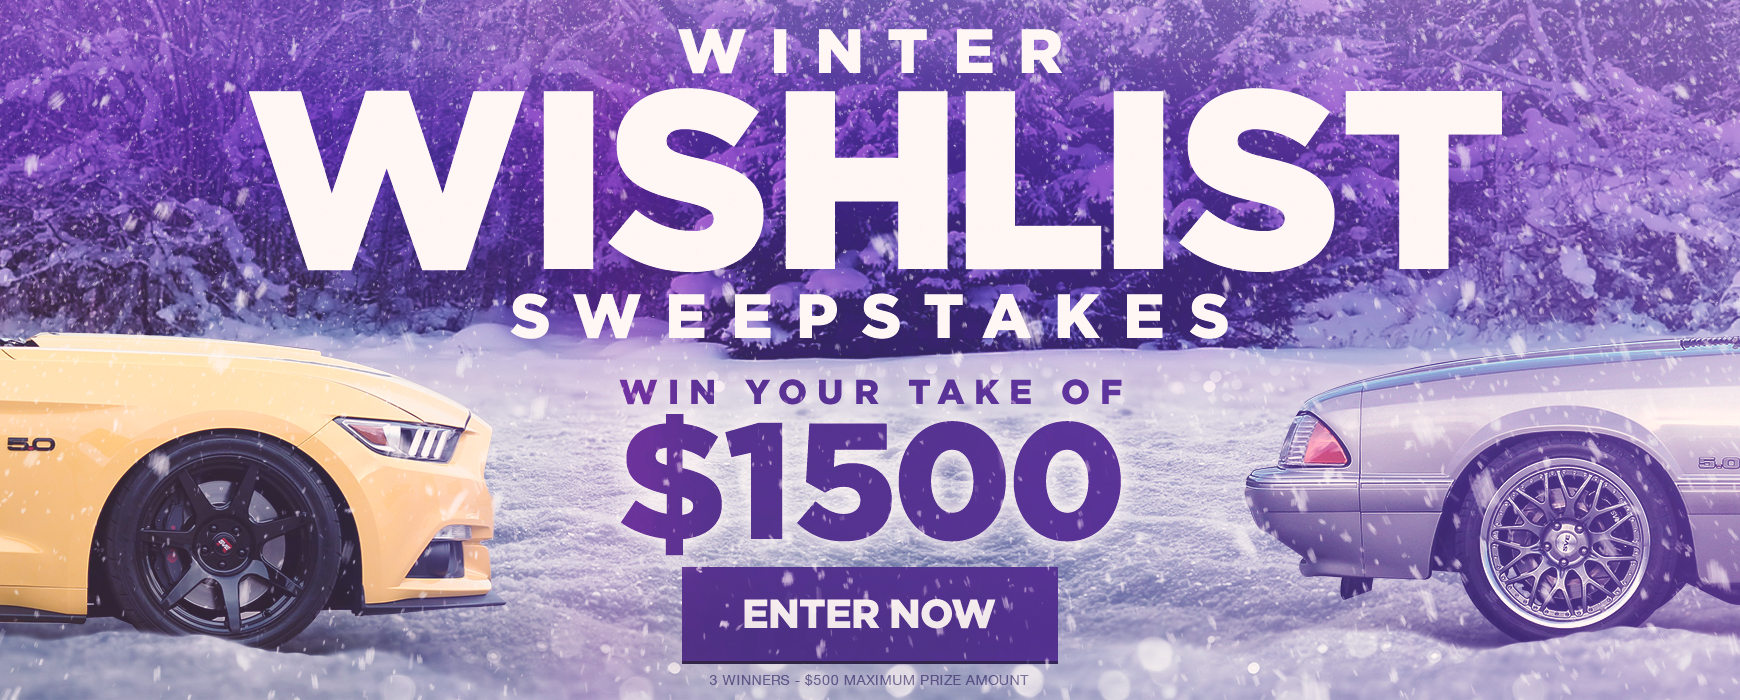 $1500 Winter Wishlist Sweepstakes